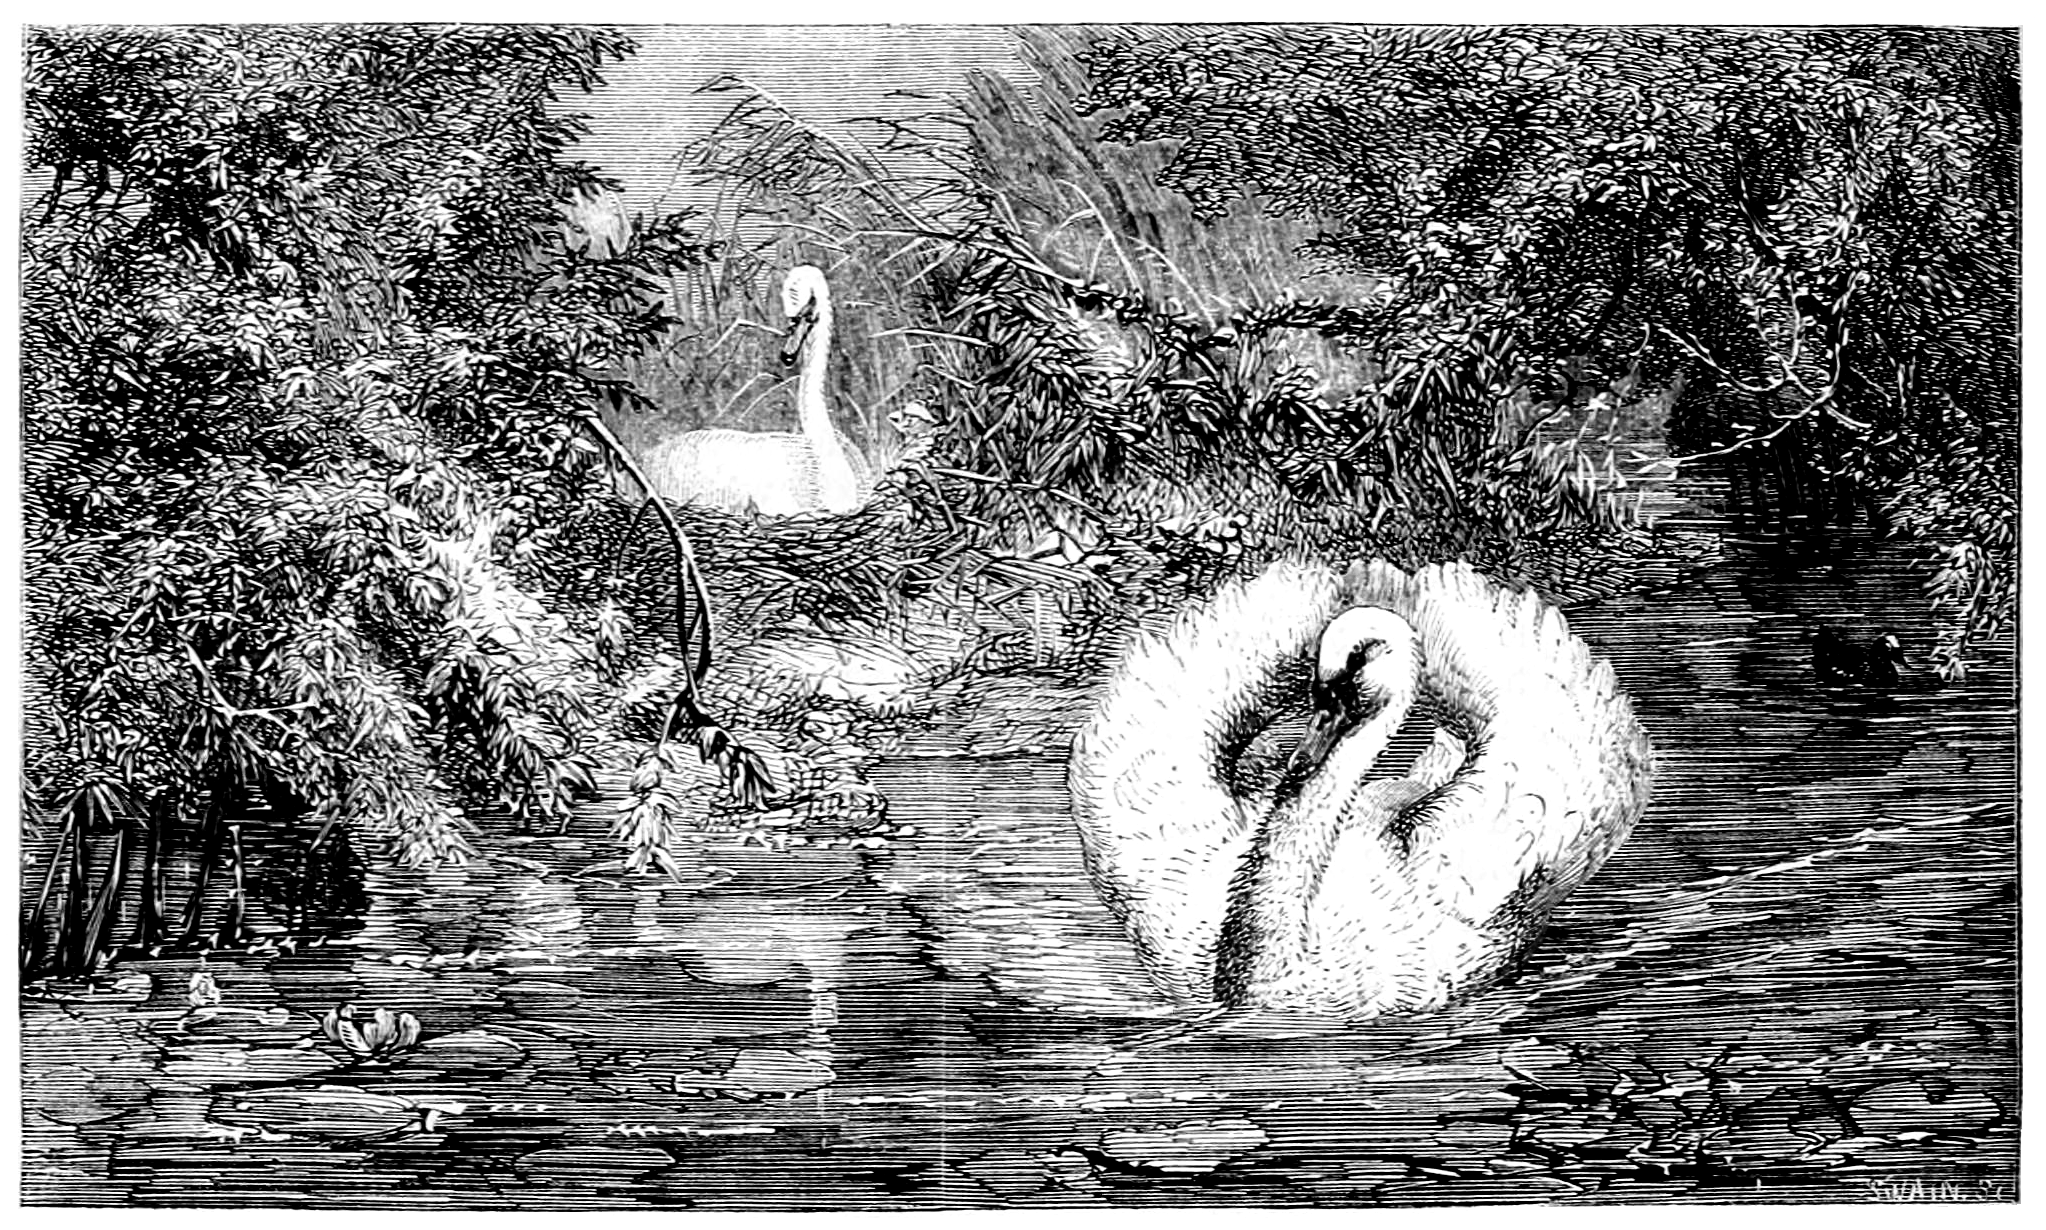 Swan sitting on eggs, with mate standing guard in the water